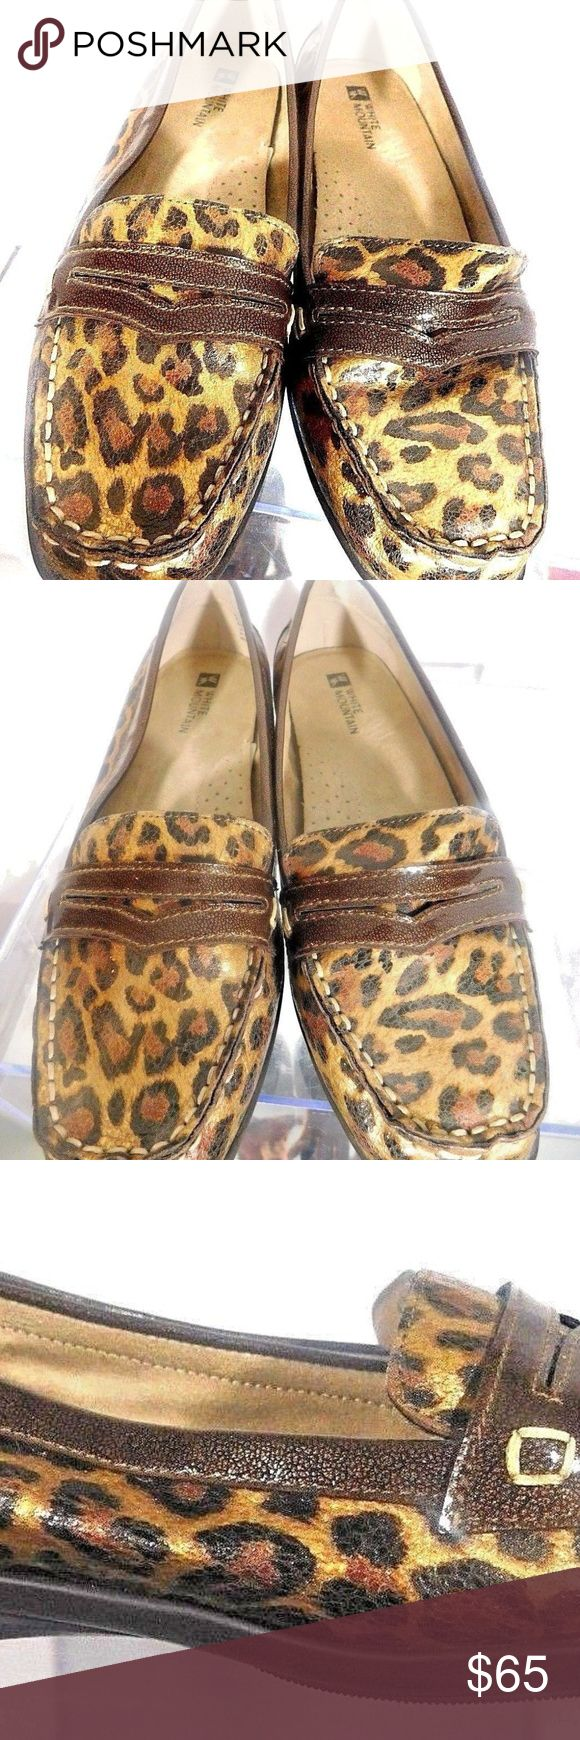 """WHITE MOUNTAIN GOLD BLACK ANIMAL PRINT LOAFER 8 WHITE MOUNTAIN """"WHAM"""" WOMEN'S GOLD BLACK ANIMAL PRINT PATENT LEATHER  DRIVING WALKING DANCING PENNY LOAFERS   SIZE 8M    Retail: $125.00   ONE OF THE MOST COMFORTABLE SHOES YOU WILL OWN GOLD, BROWN, BLACK LEOPARD ANIMAL PRINT BUTTER SOFT GEL INNERSOLE PATENT LEATHER UPPER DURABLE SYNTHETIC RUBBER SOLE WHITE MOUNTAIN Shoes Flats & Loafers"""